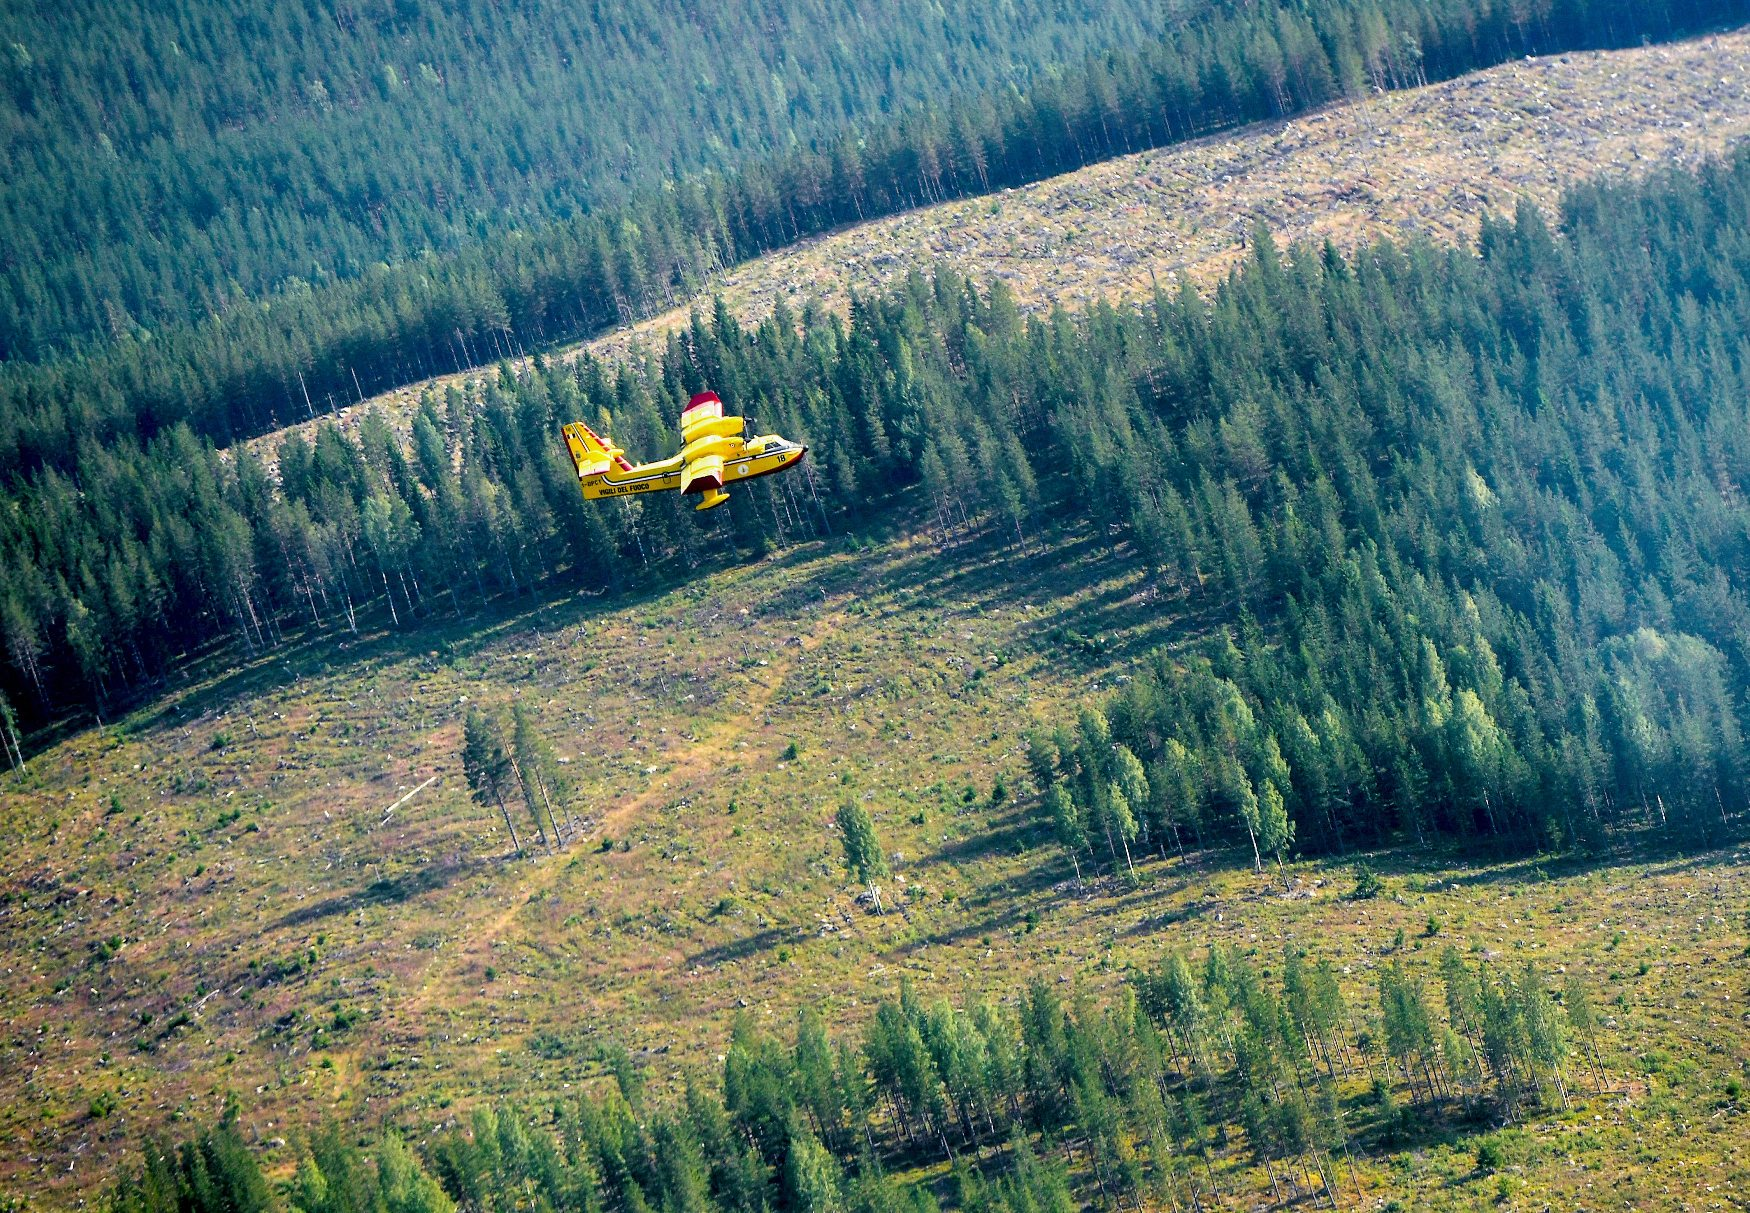 An Italian Bombardier CL-415 SuperScooper flies towards a wildfire outside Ljusdal, Sweden,  July 18, 2018. TT News Agency/Maja Suslin via REUTERS  ATTENTION EDITORS - THIS IMAGE WAS PROVIDED BY A THIRD PARTY. SWEDEN OUT. NO COMMERCIAL OR EDITORIAL SALES IN SWEDEN.